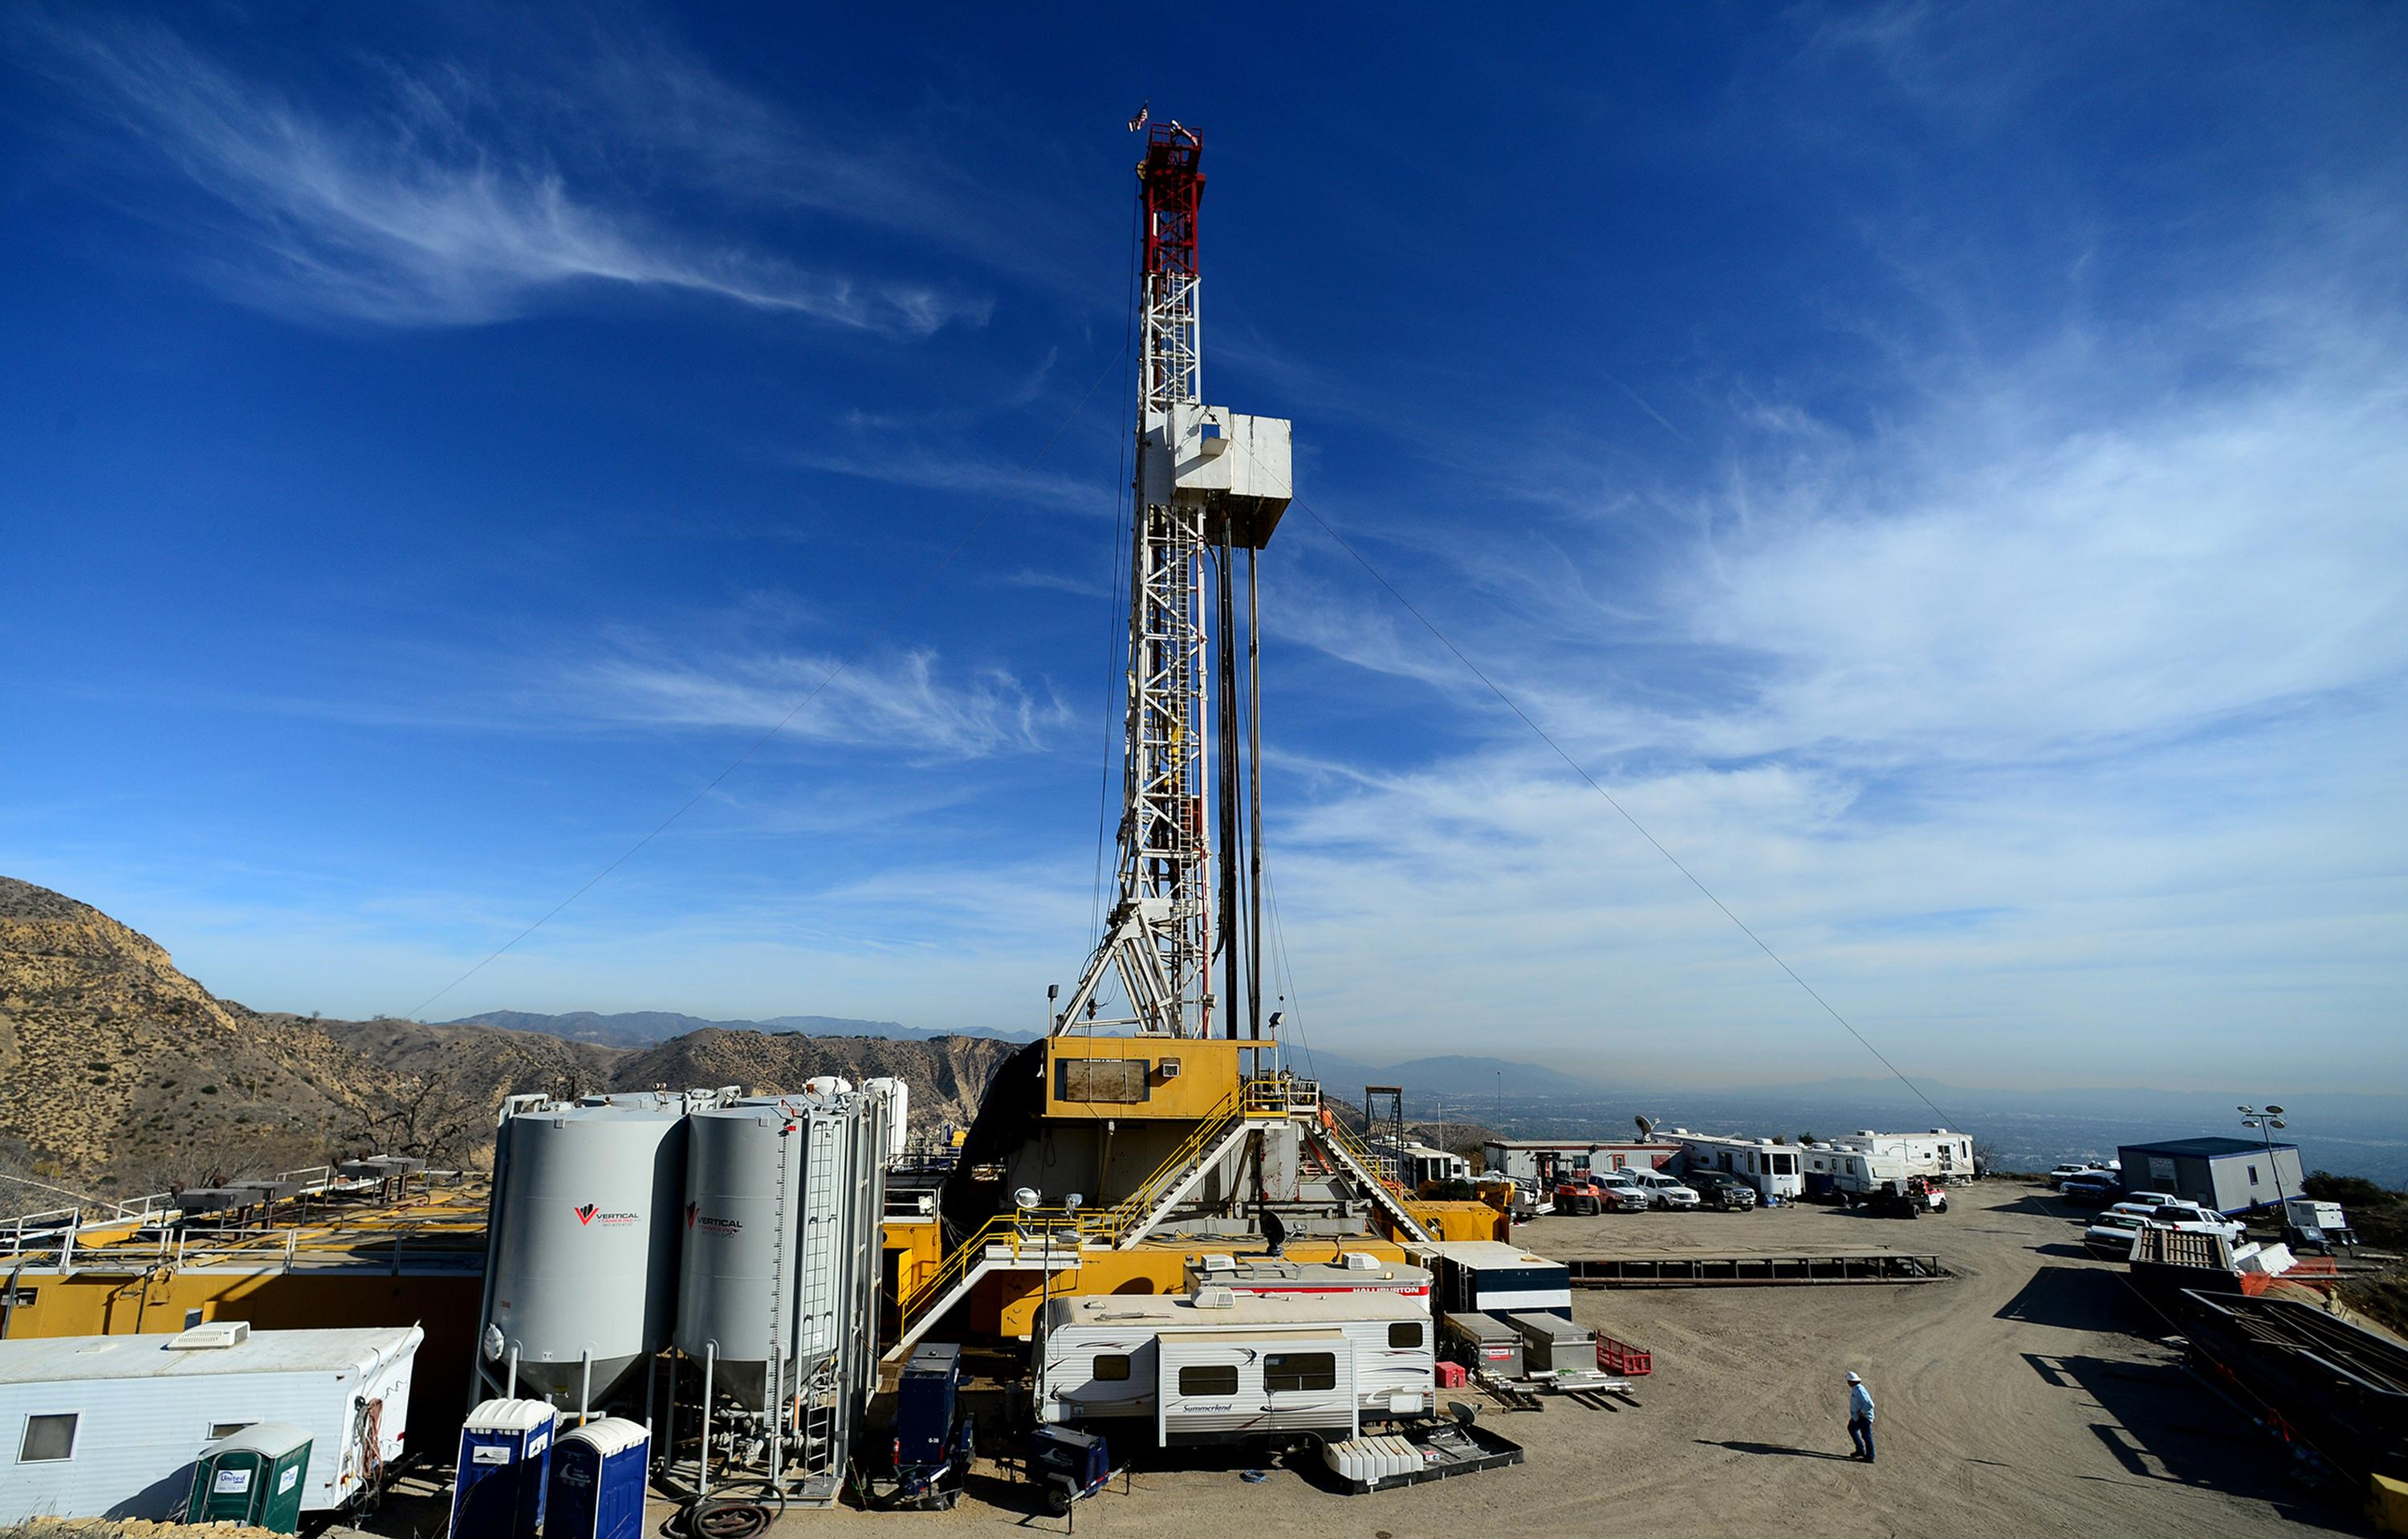 Study finds toxic metals in Los Angeles homes near gas leak - Washington Times